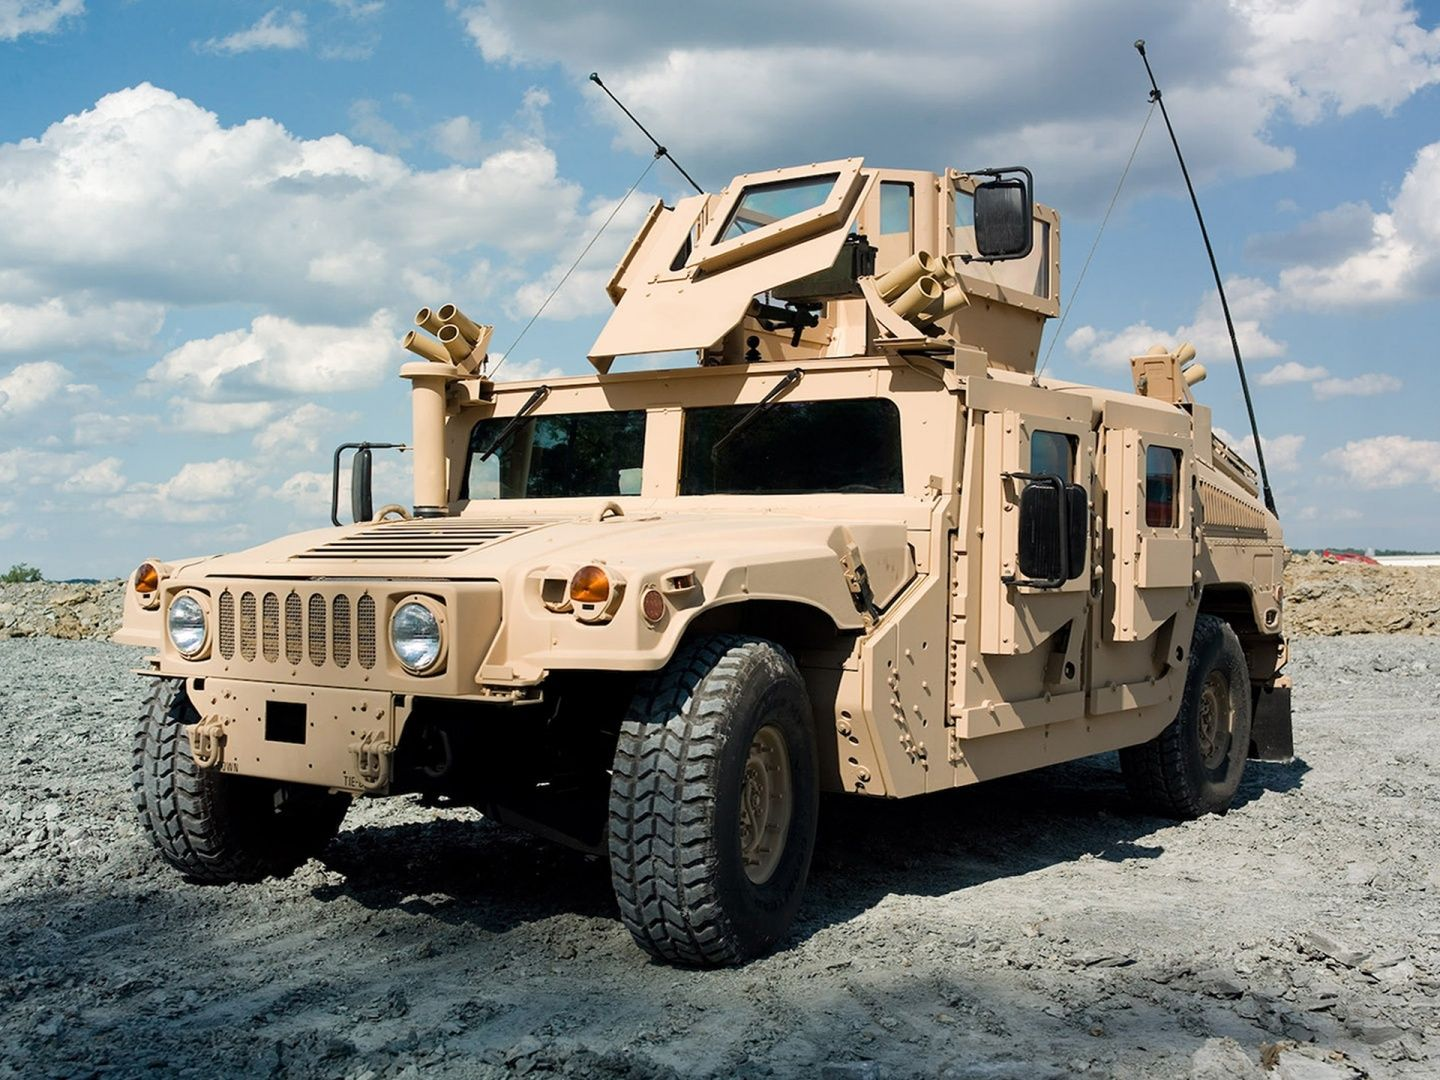 US Army Hummer | Hummer wallpapers | Pinterest | Hummer, Vehicle and